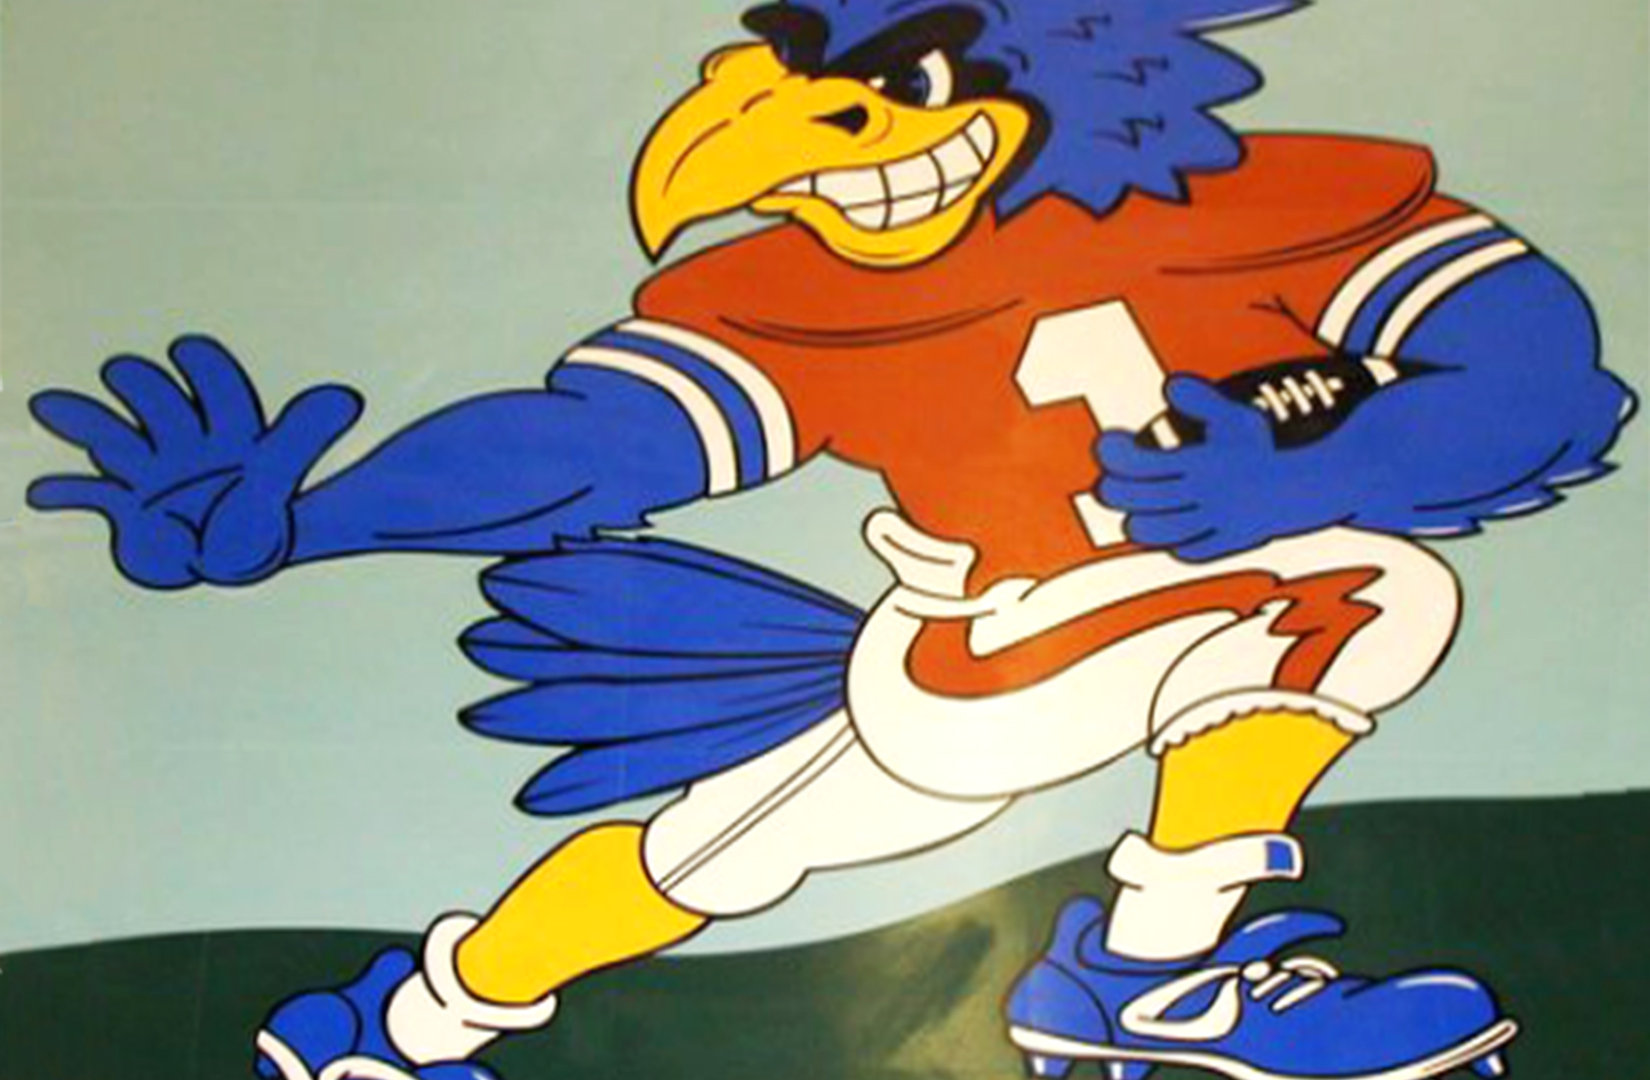 High School Mascot in Vinyl